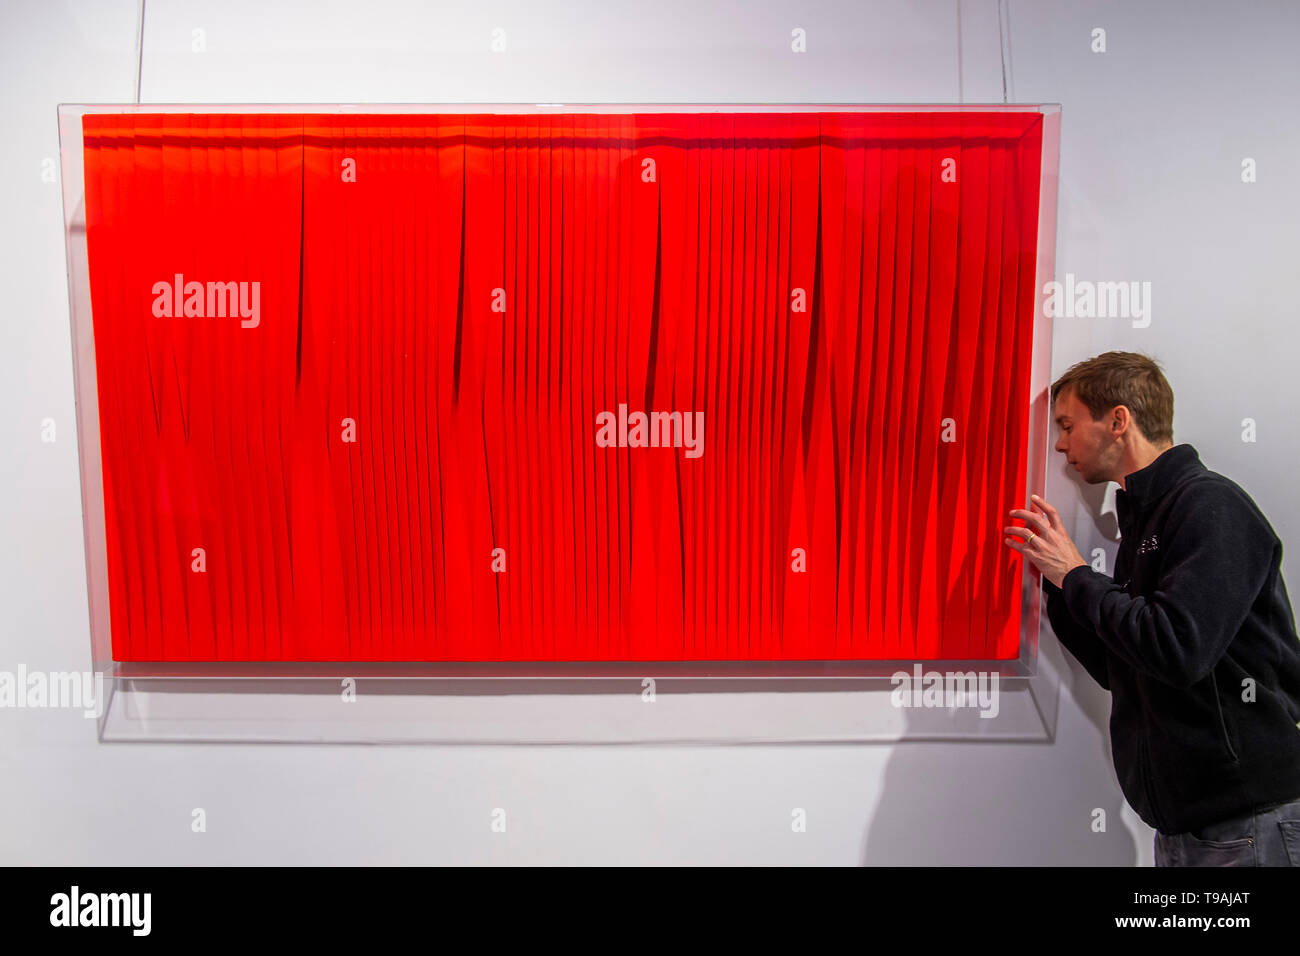 London, UK. 17th May 2019. Sincronicità rosso fluo vibrante, 2018 by Pino Manos - Spaziale! at Opera Gallery London. Organised in collaboration with the Italian Embassy in London, the exhibition includes 40 iconic canvases by Lucio Fontana, Agostino Bonalumi and Enrico Castellani among others. Credit: Guy Bell/Alamy Live News - Stock Image